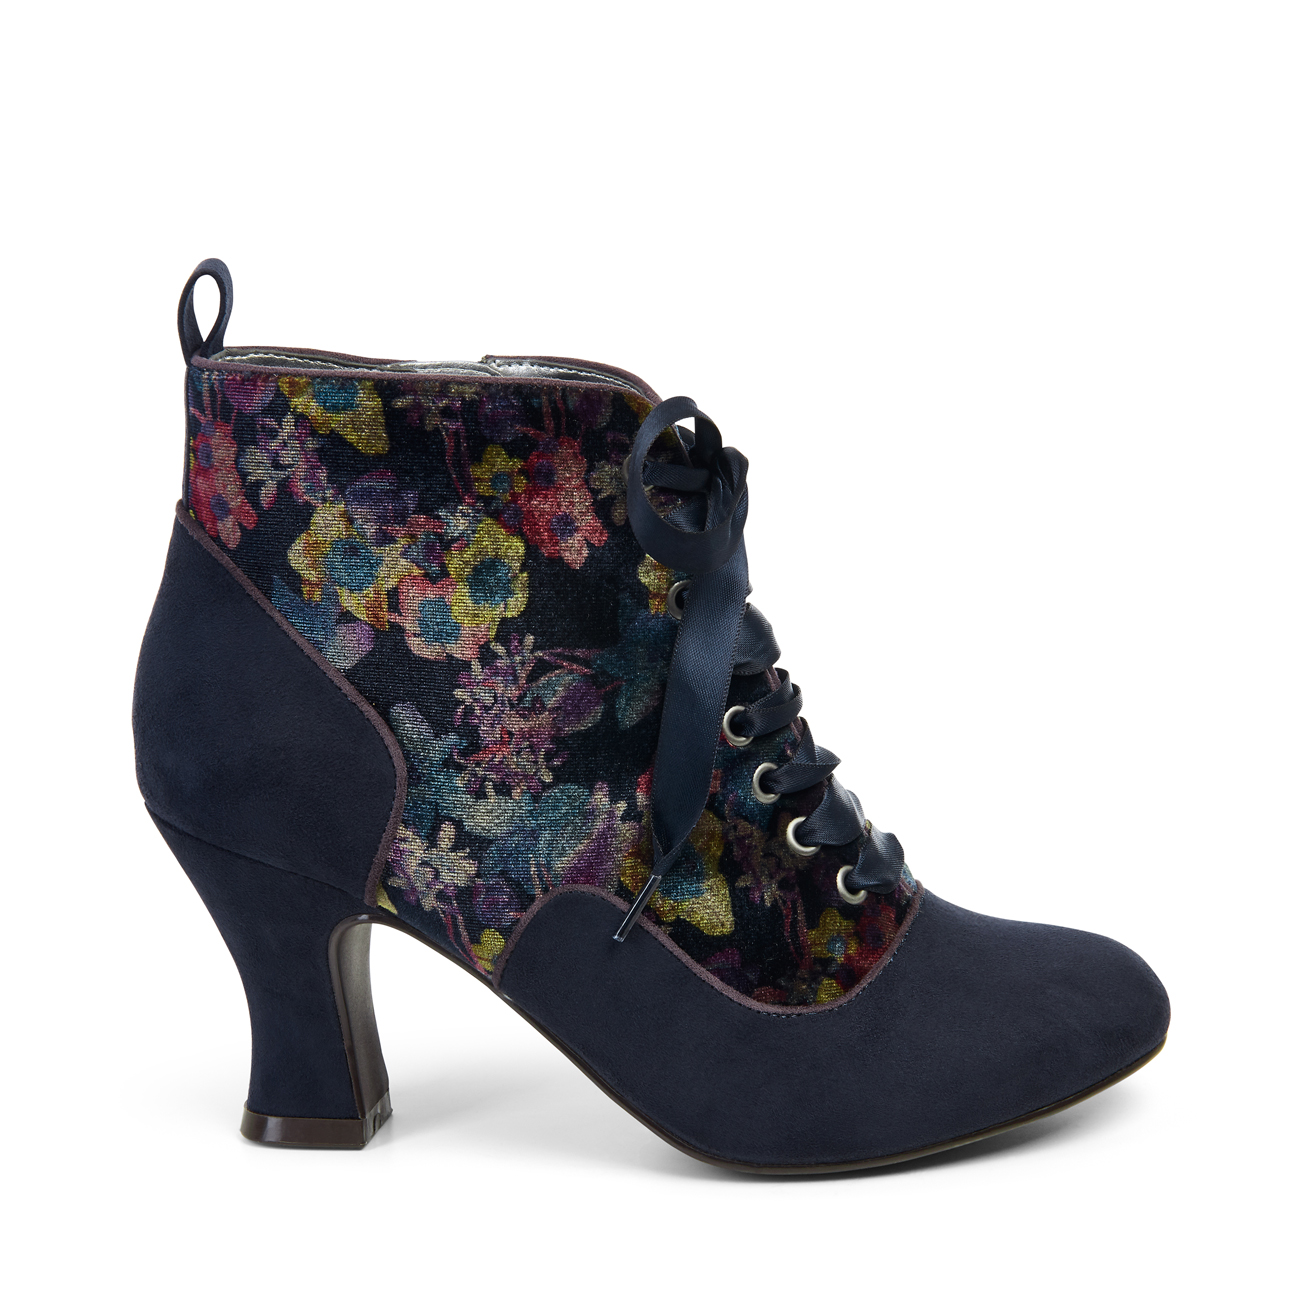 Ruby Shoo Bailey Ankle Stiefel Mink UK3-9 Luxurious Navy / Mink Stiefel Floral 50c860